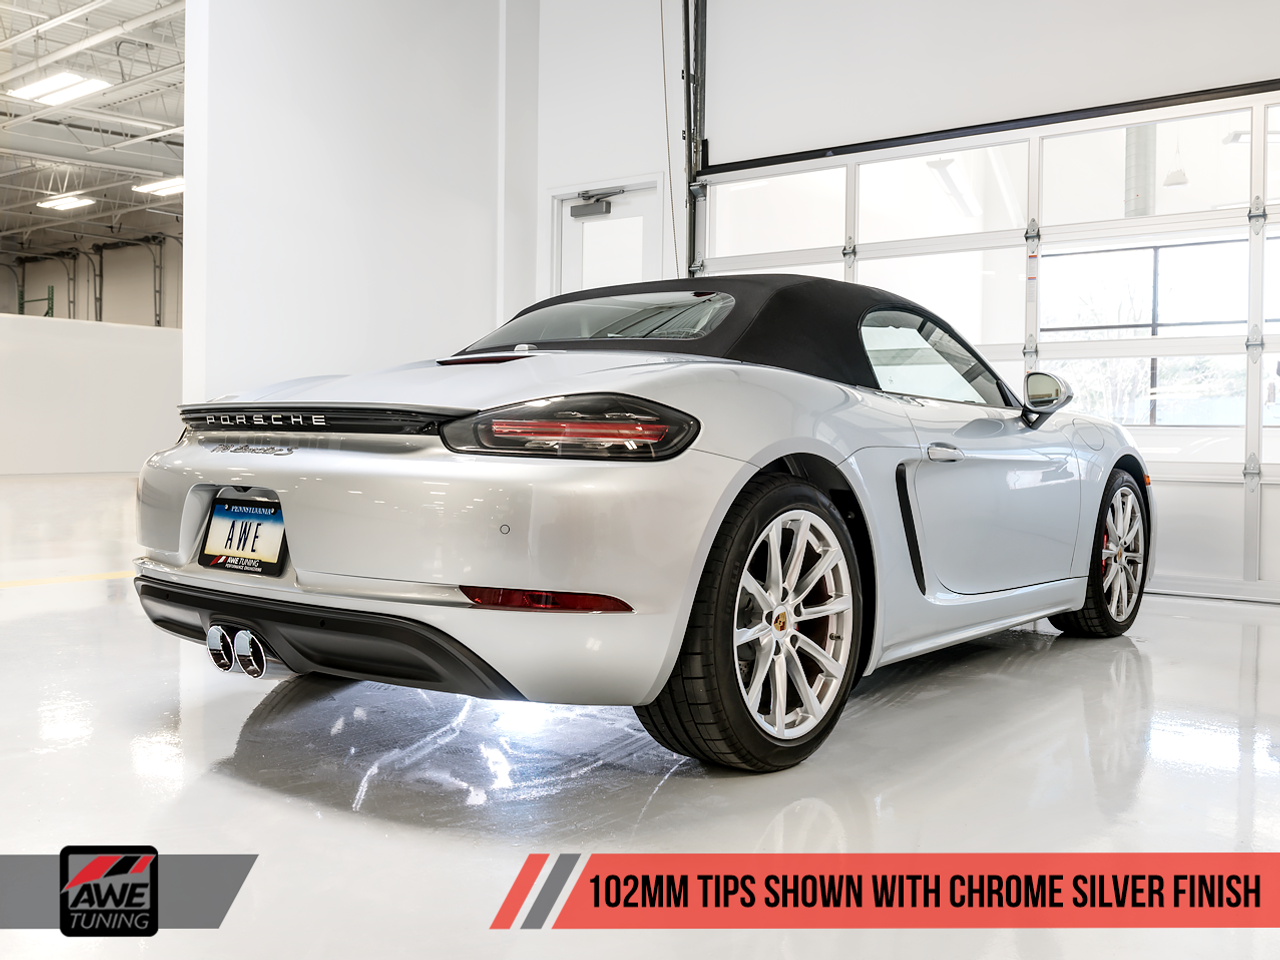 AWE Tuning Porsche 718 Boxster & Cayman Track Edition Exhaust - Chrome Silver Tailpipes